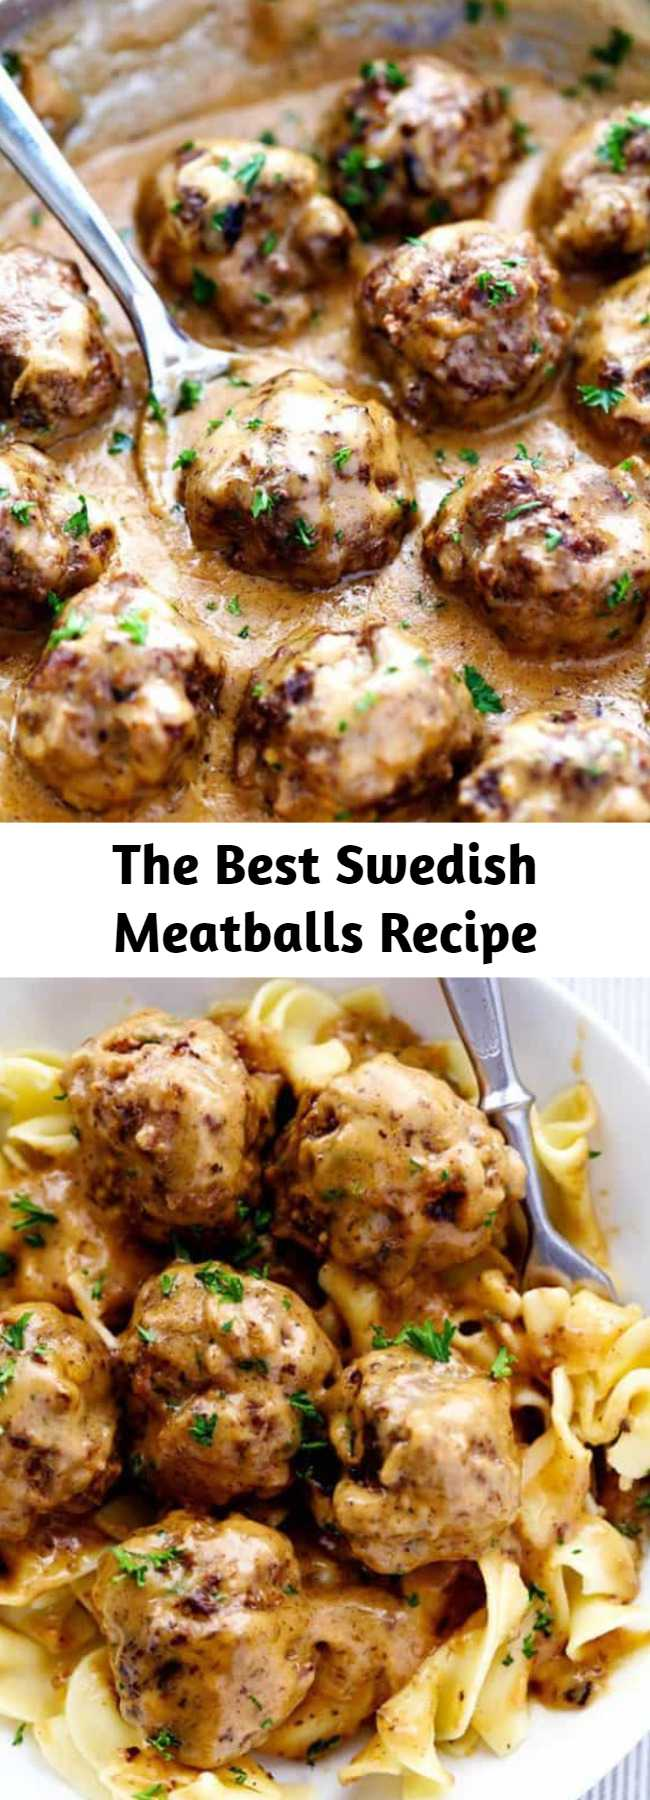 The Best Swedish Meatballs Recipe - The Best Swedish Meatballs are smothered in the most amazing rich and creamy gravy. The meatballs are packed with such delicious flavor. Savory, comforting and smothered with a sauce that melts in your mouth. You will quickly agree these are the BEST you have ever had!